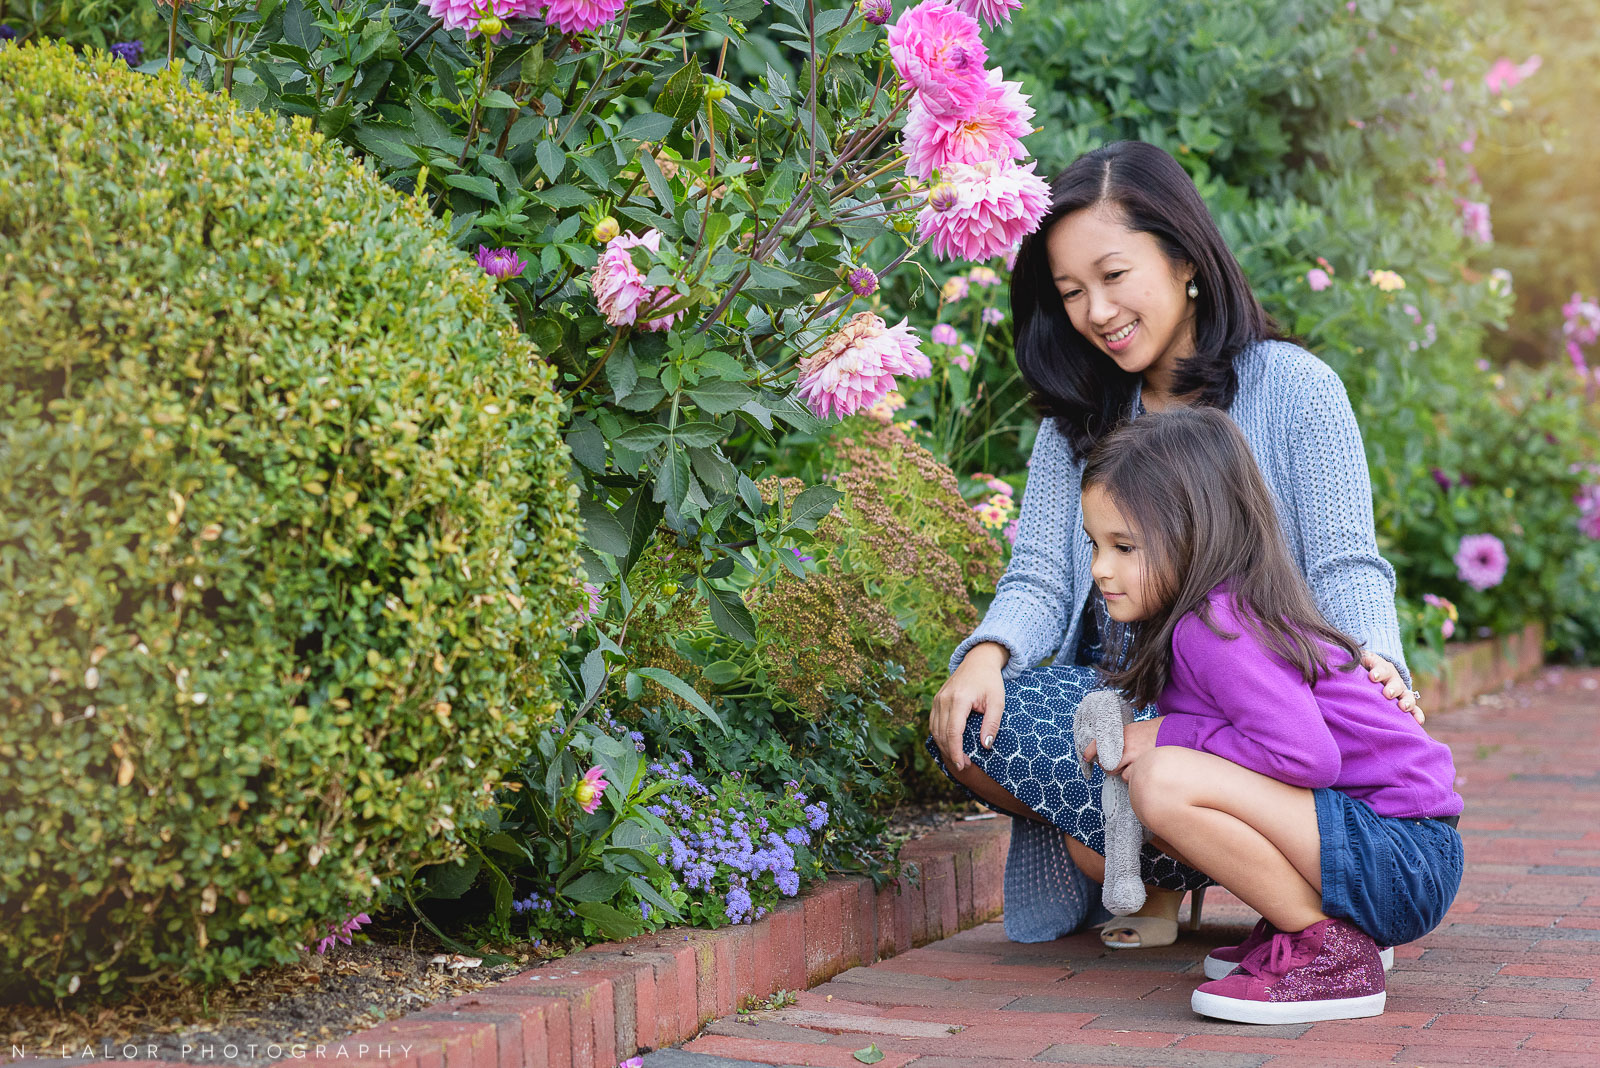 Lifestyle portrait of Mom and daughter looking at beautiful flowers in the garden. Photo by N. Lalor Photography. Waveny Park, New Canaan, Connecticut.